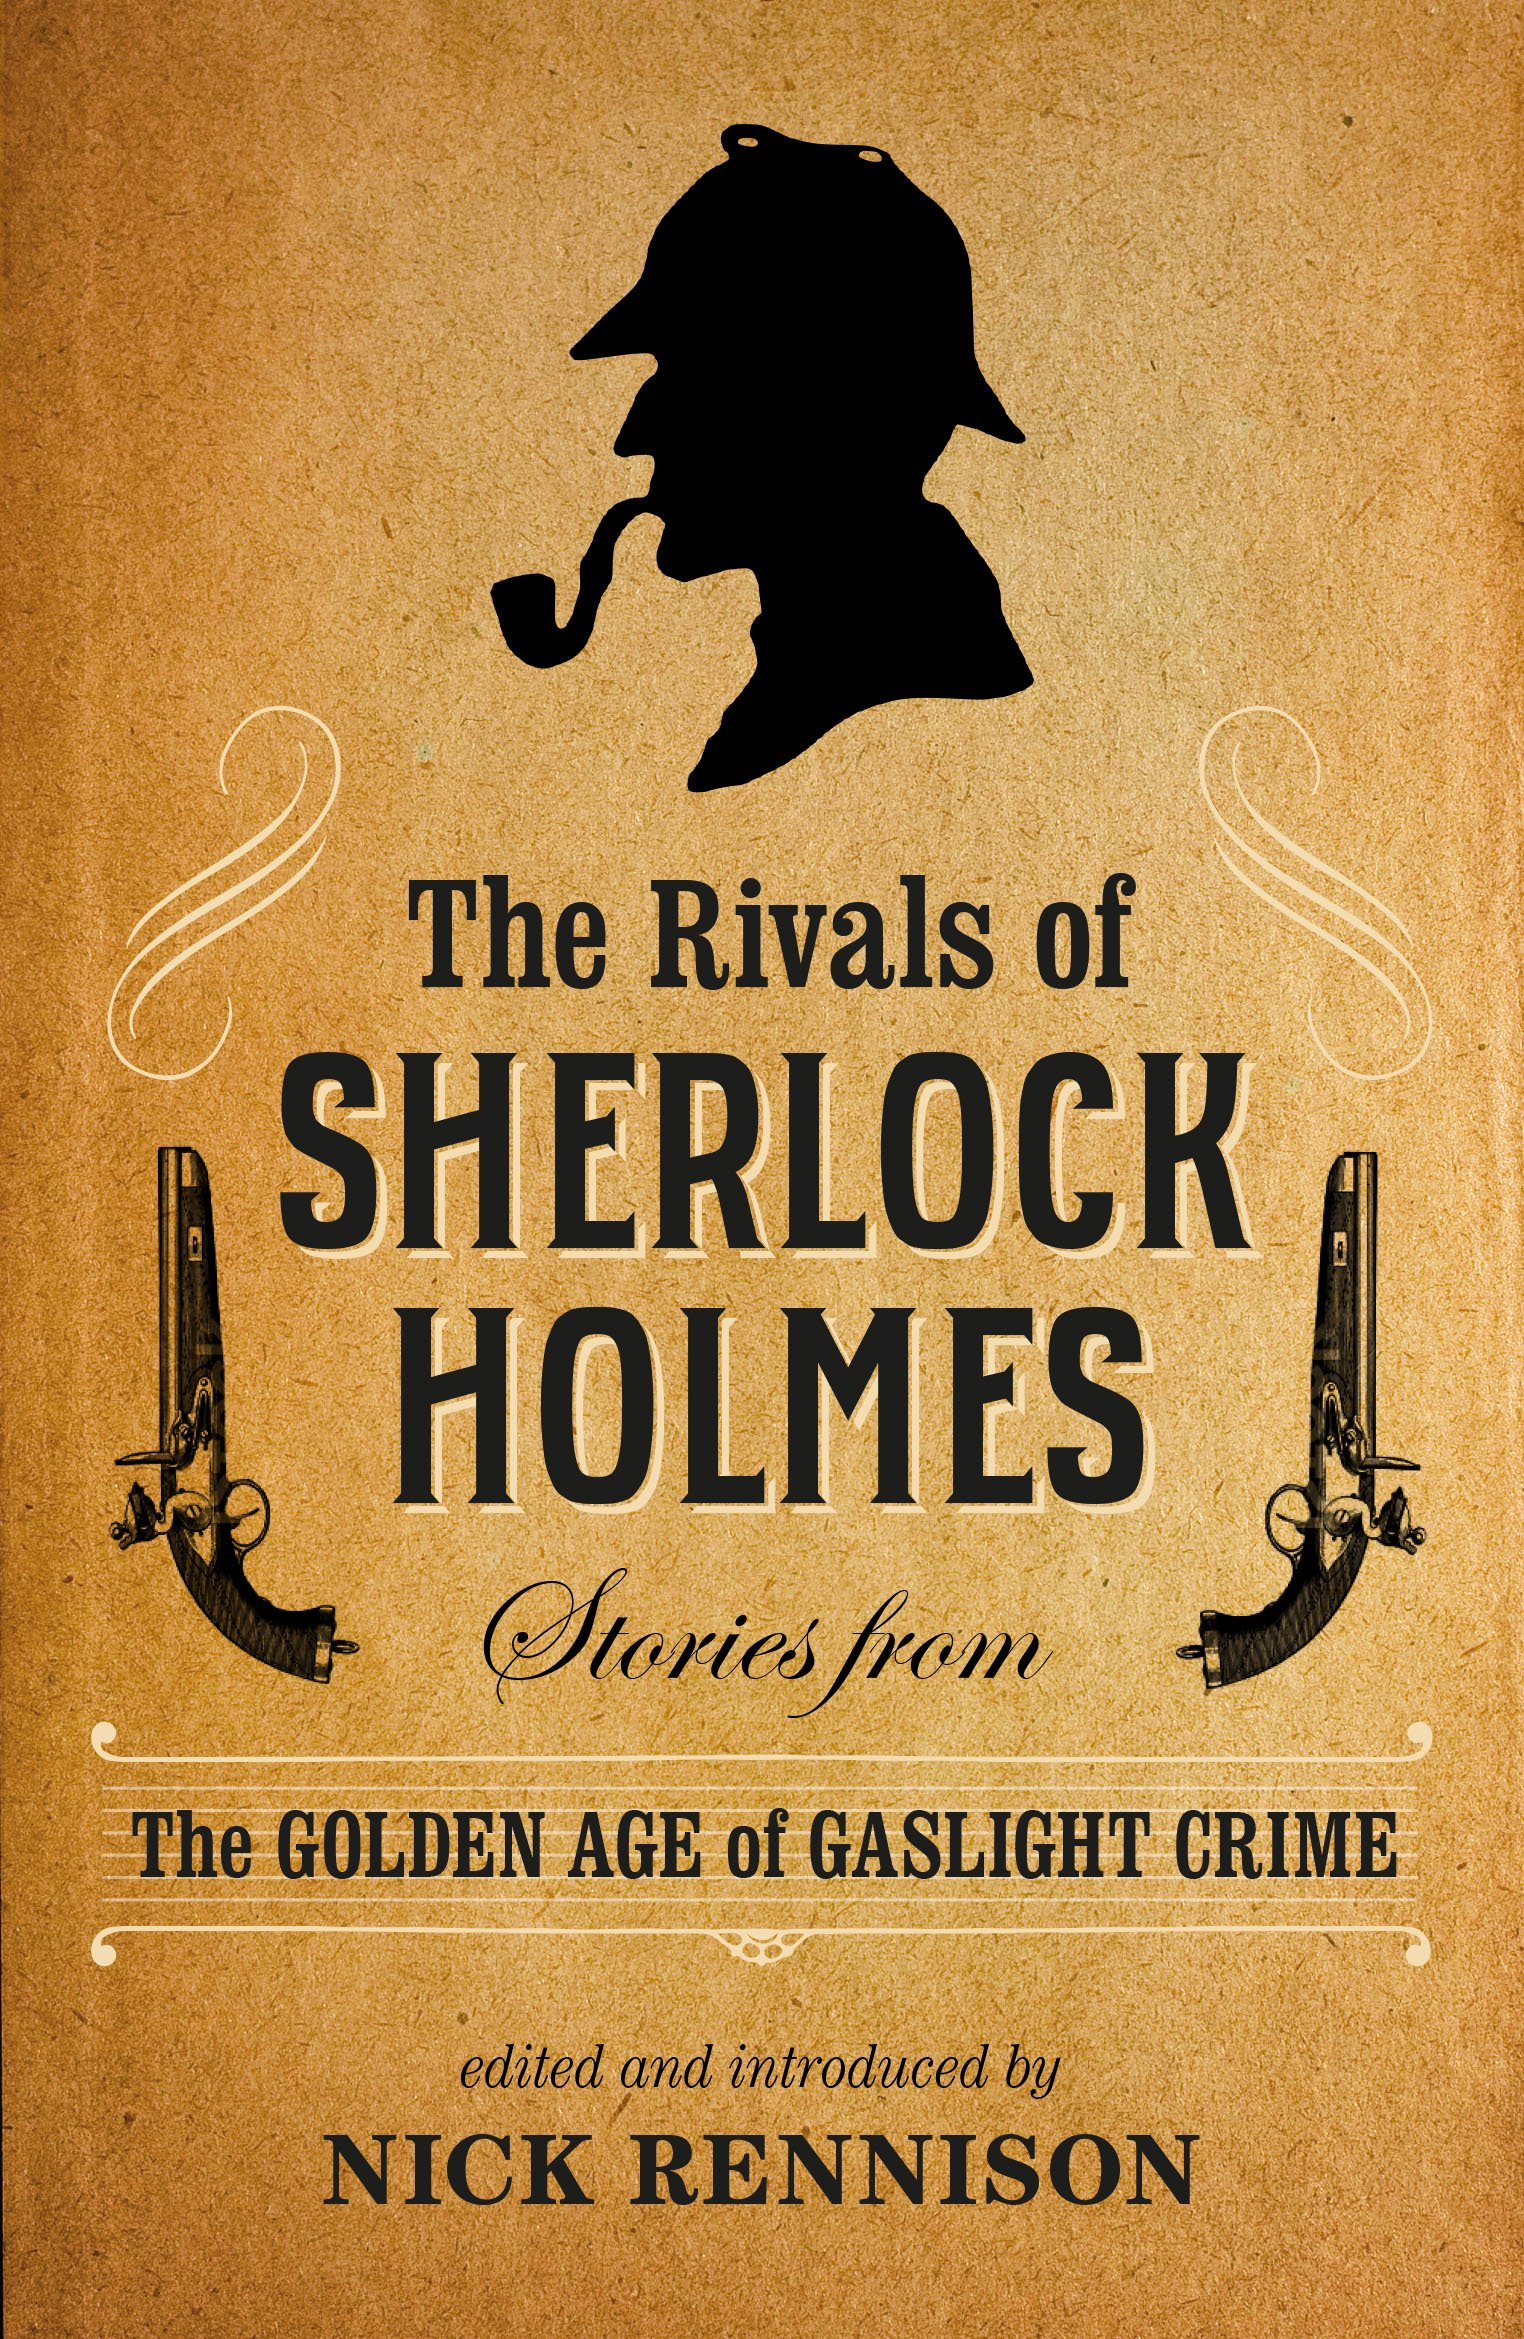 The Rivals of Sherlock Holmes: Stories from the Golden Age of Gaslight  Crime: Nick Rennison: 9781843447375: Amazon.com: Books